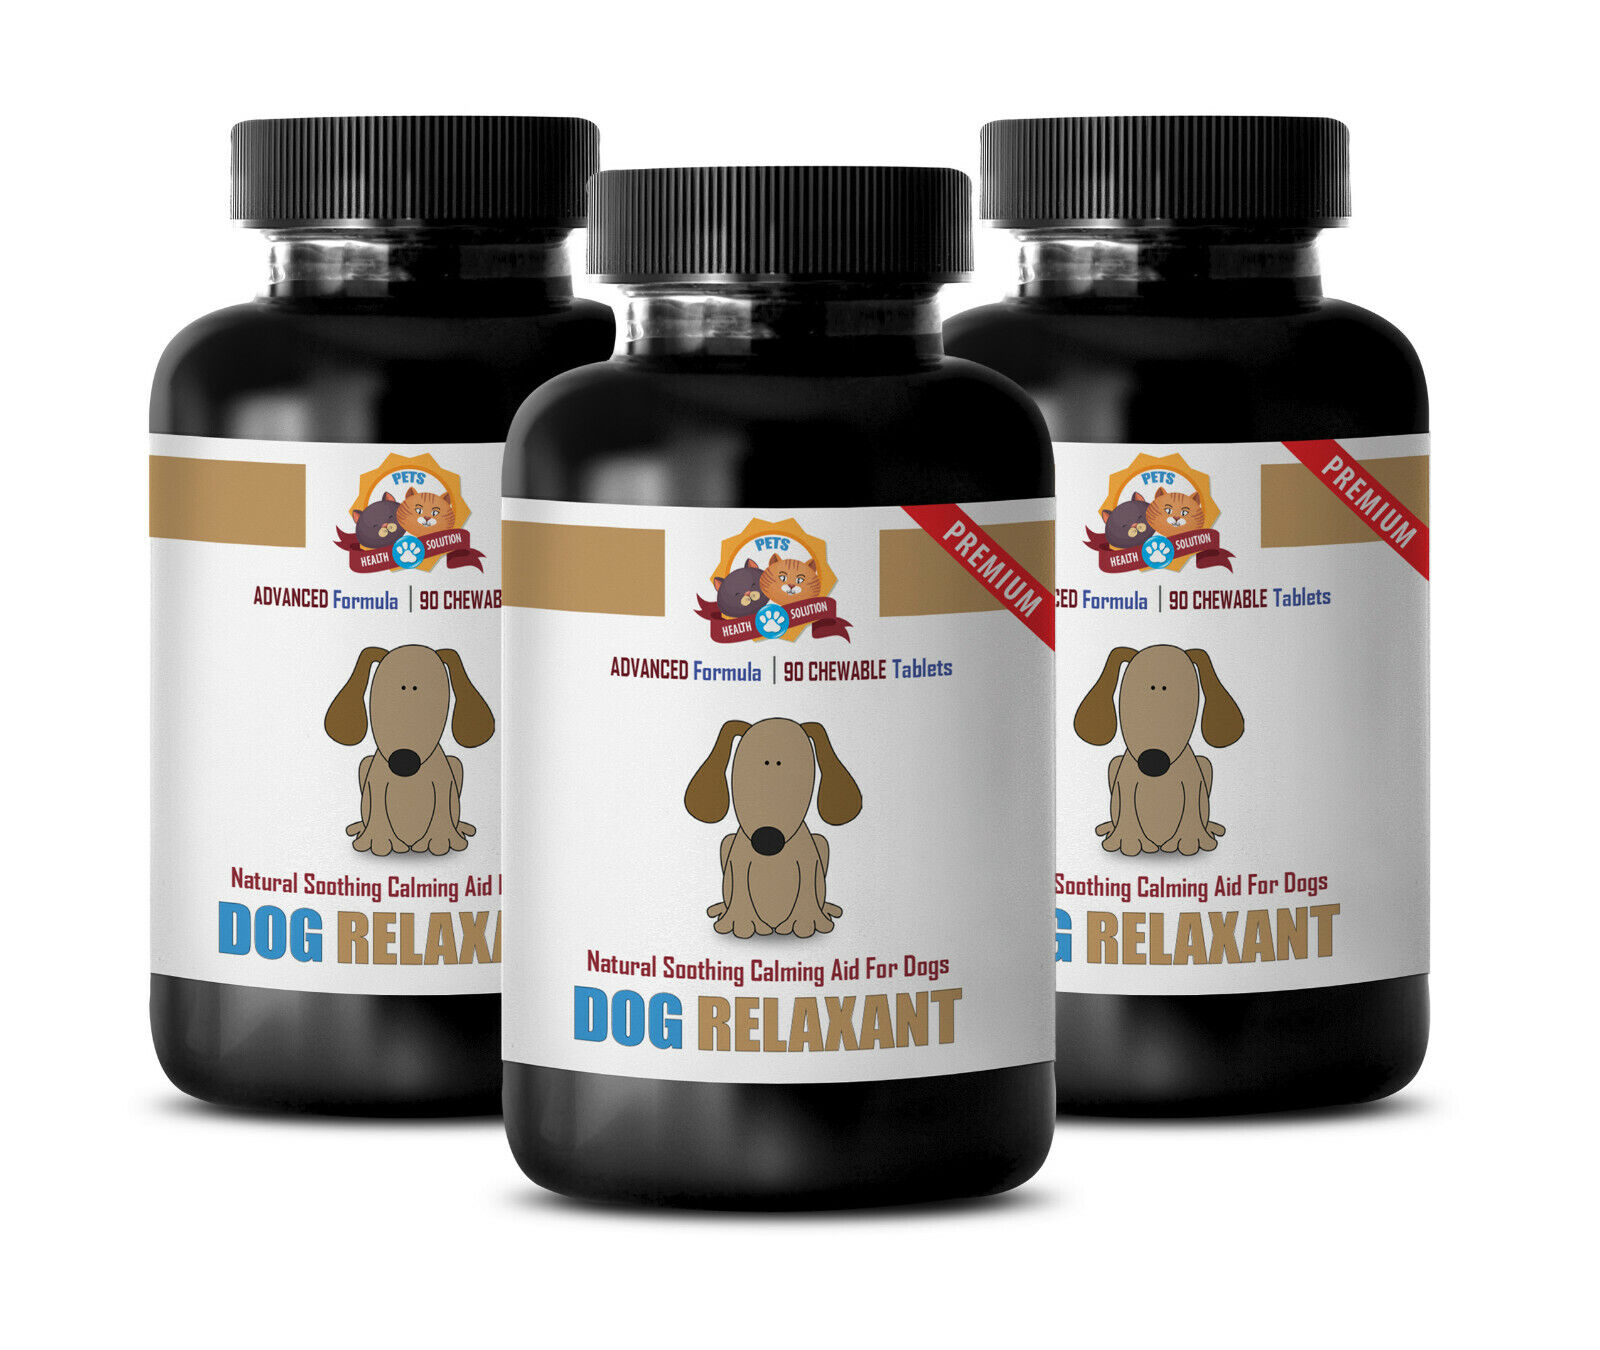 dog calming supplement  DOG RELAXANT FOR ANXIETY 3B  chamomile for dogs